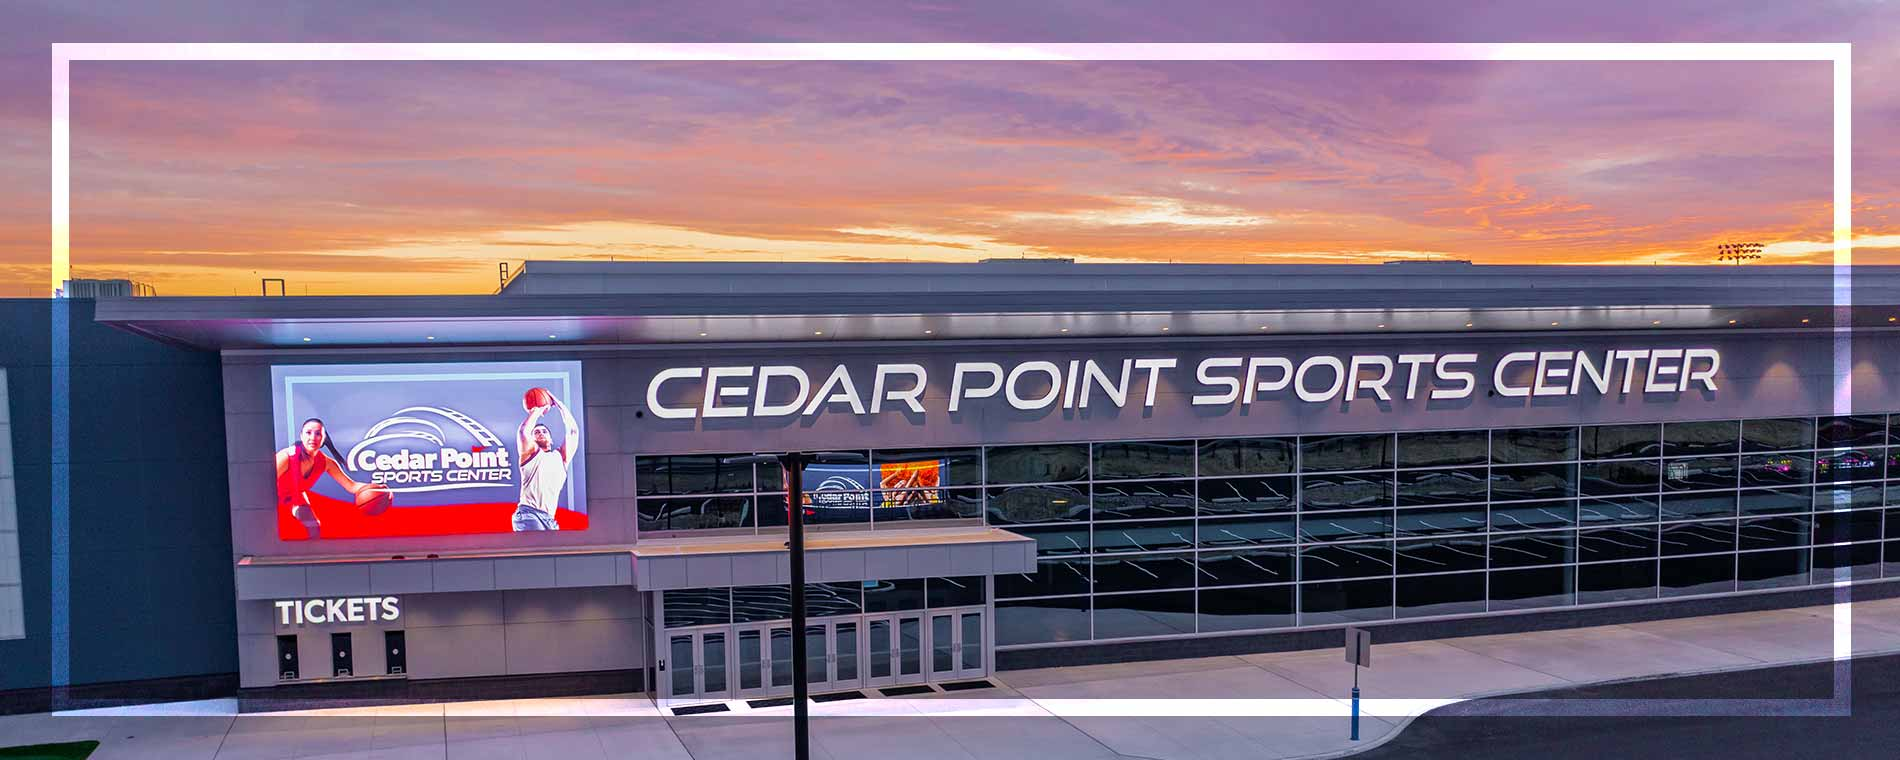 Cedar Point Sports Center Exterior Sunset 2